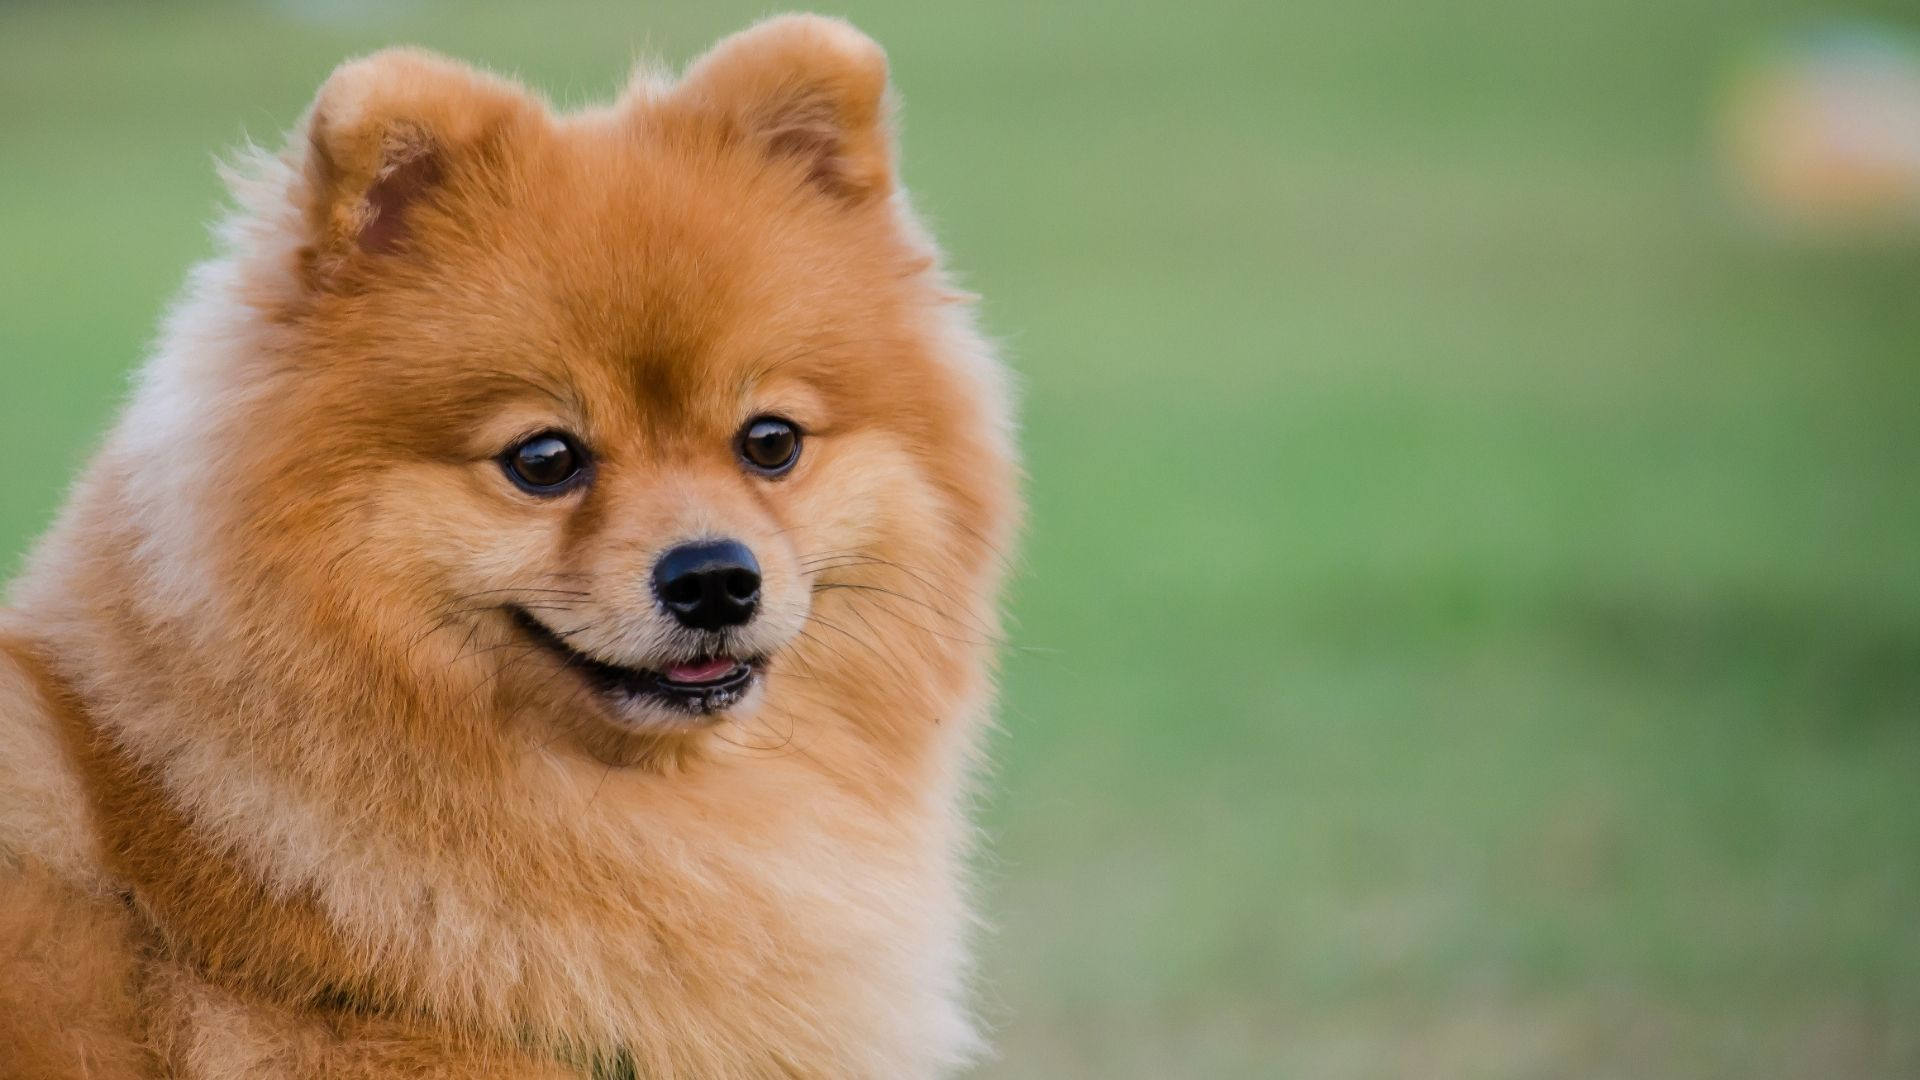 There are many different types of dry skin remedies for dogs, including lanolin, vitamin E, olive oil, liquid glycerin, and...